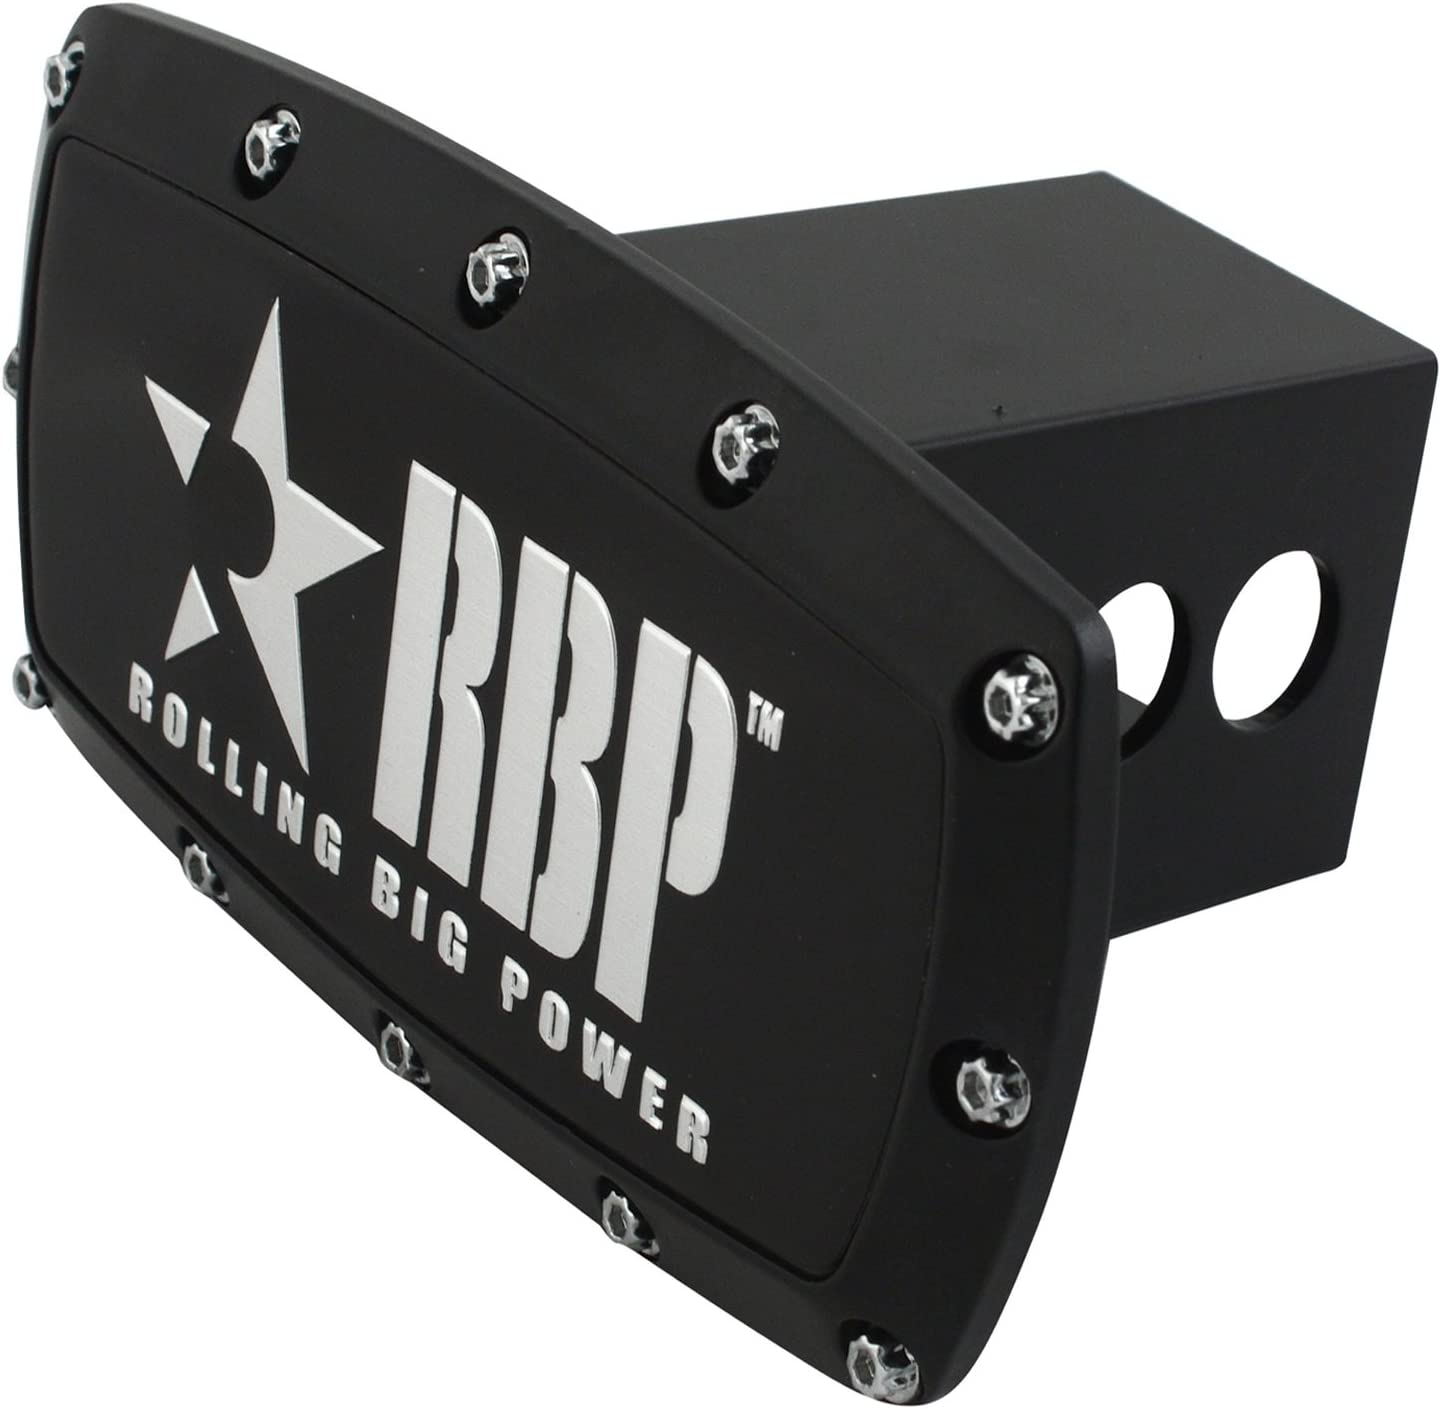 RBP RBP-7504-RX3 Black 6 x 6 Star Hitch Cover with Brushed 5 Star